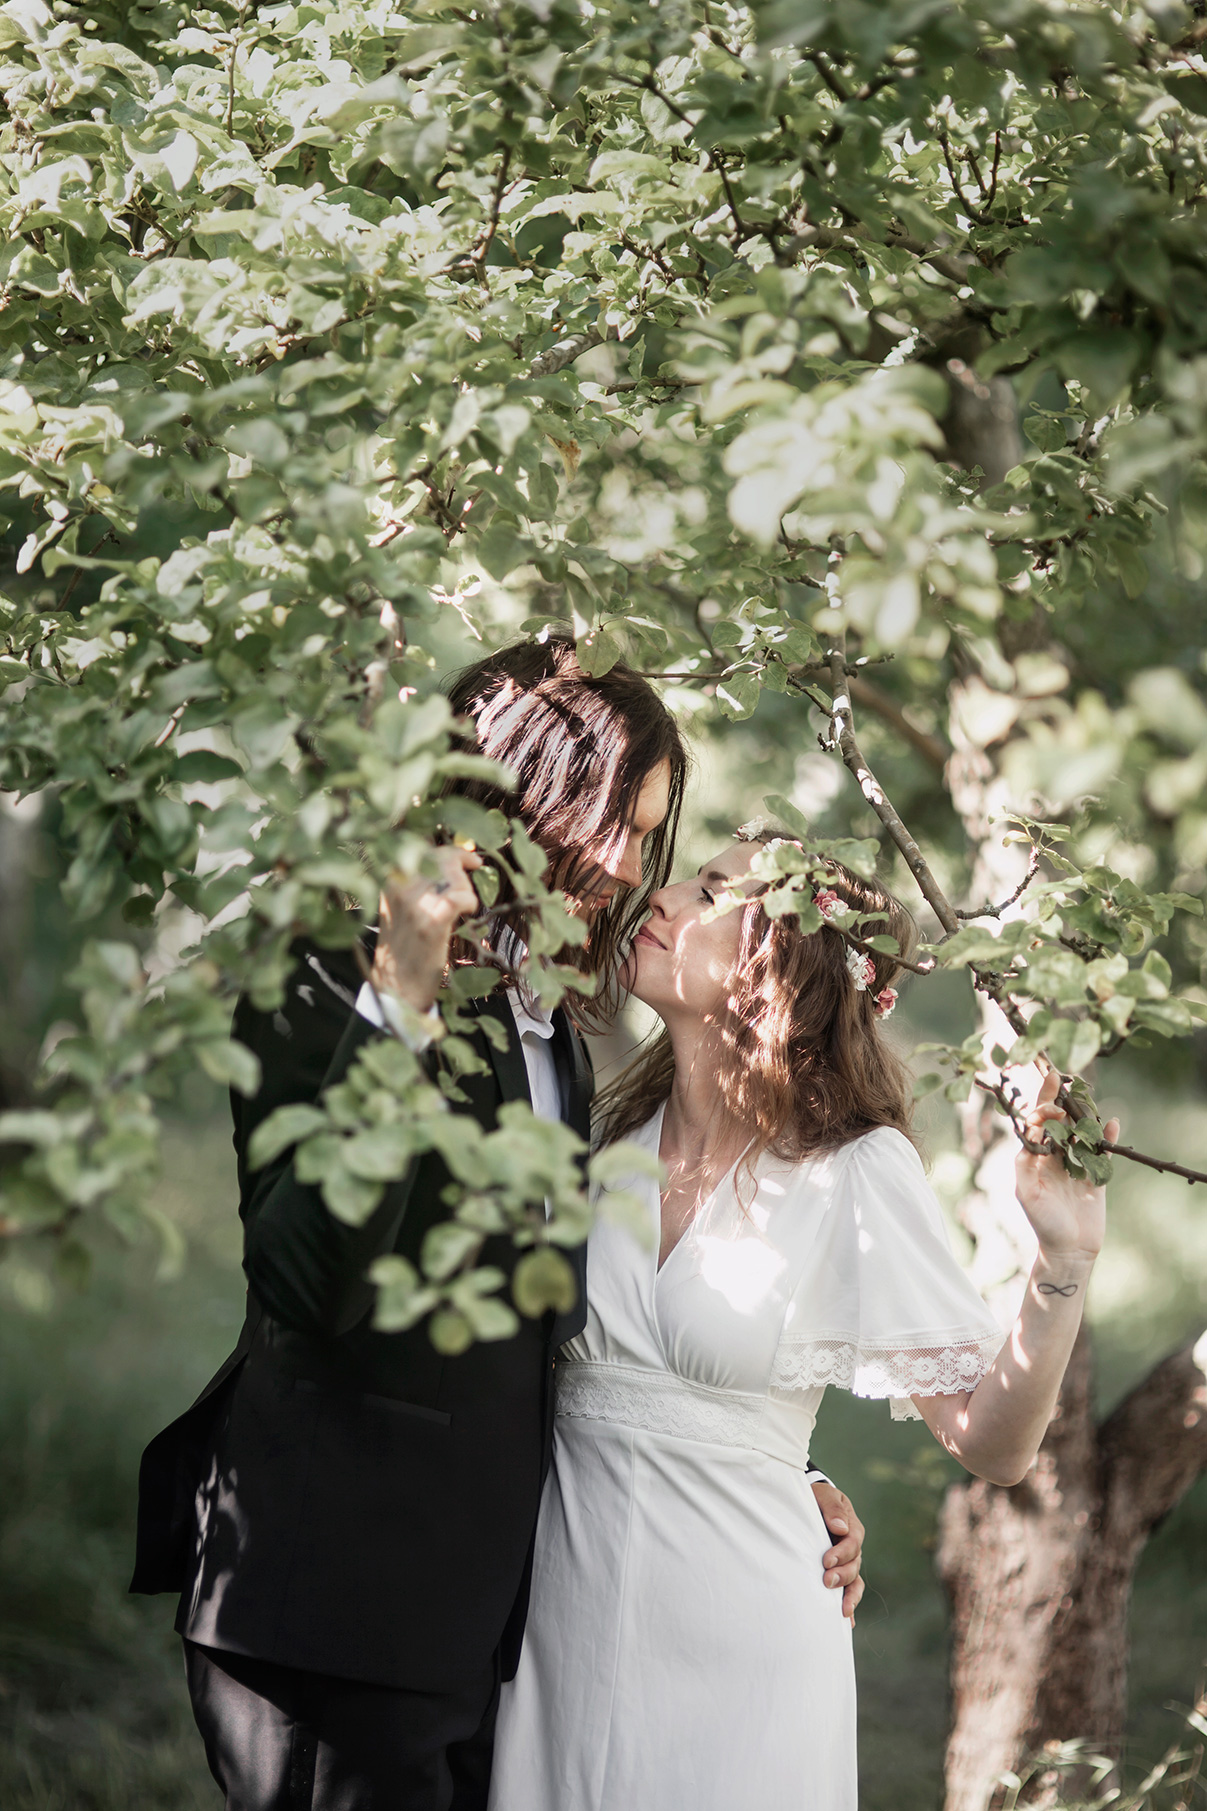 Anton's and Maria's bohemian wedding photo: Anna Malmberg n°103